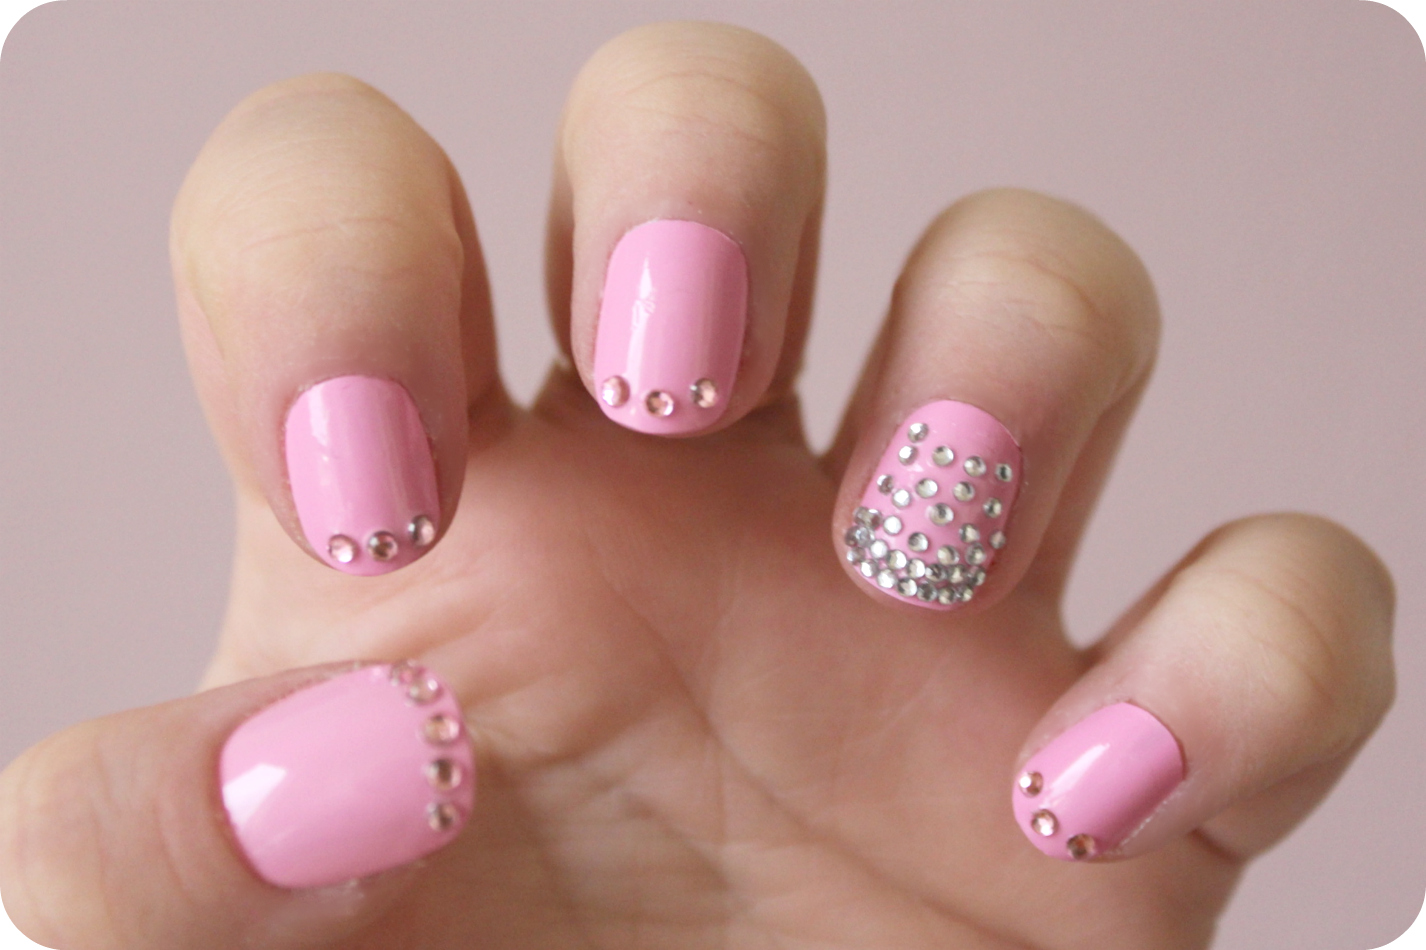 Nail Design with Gems